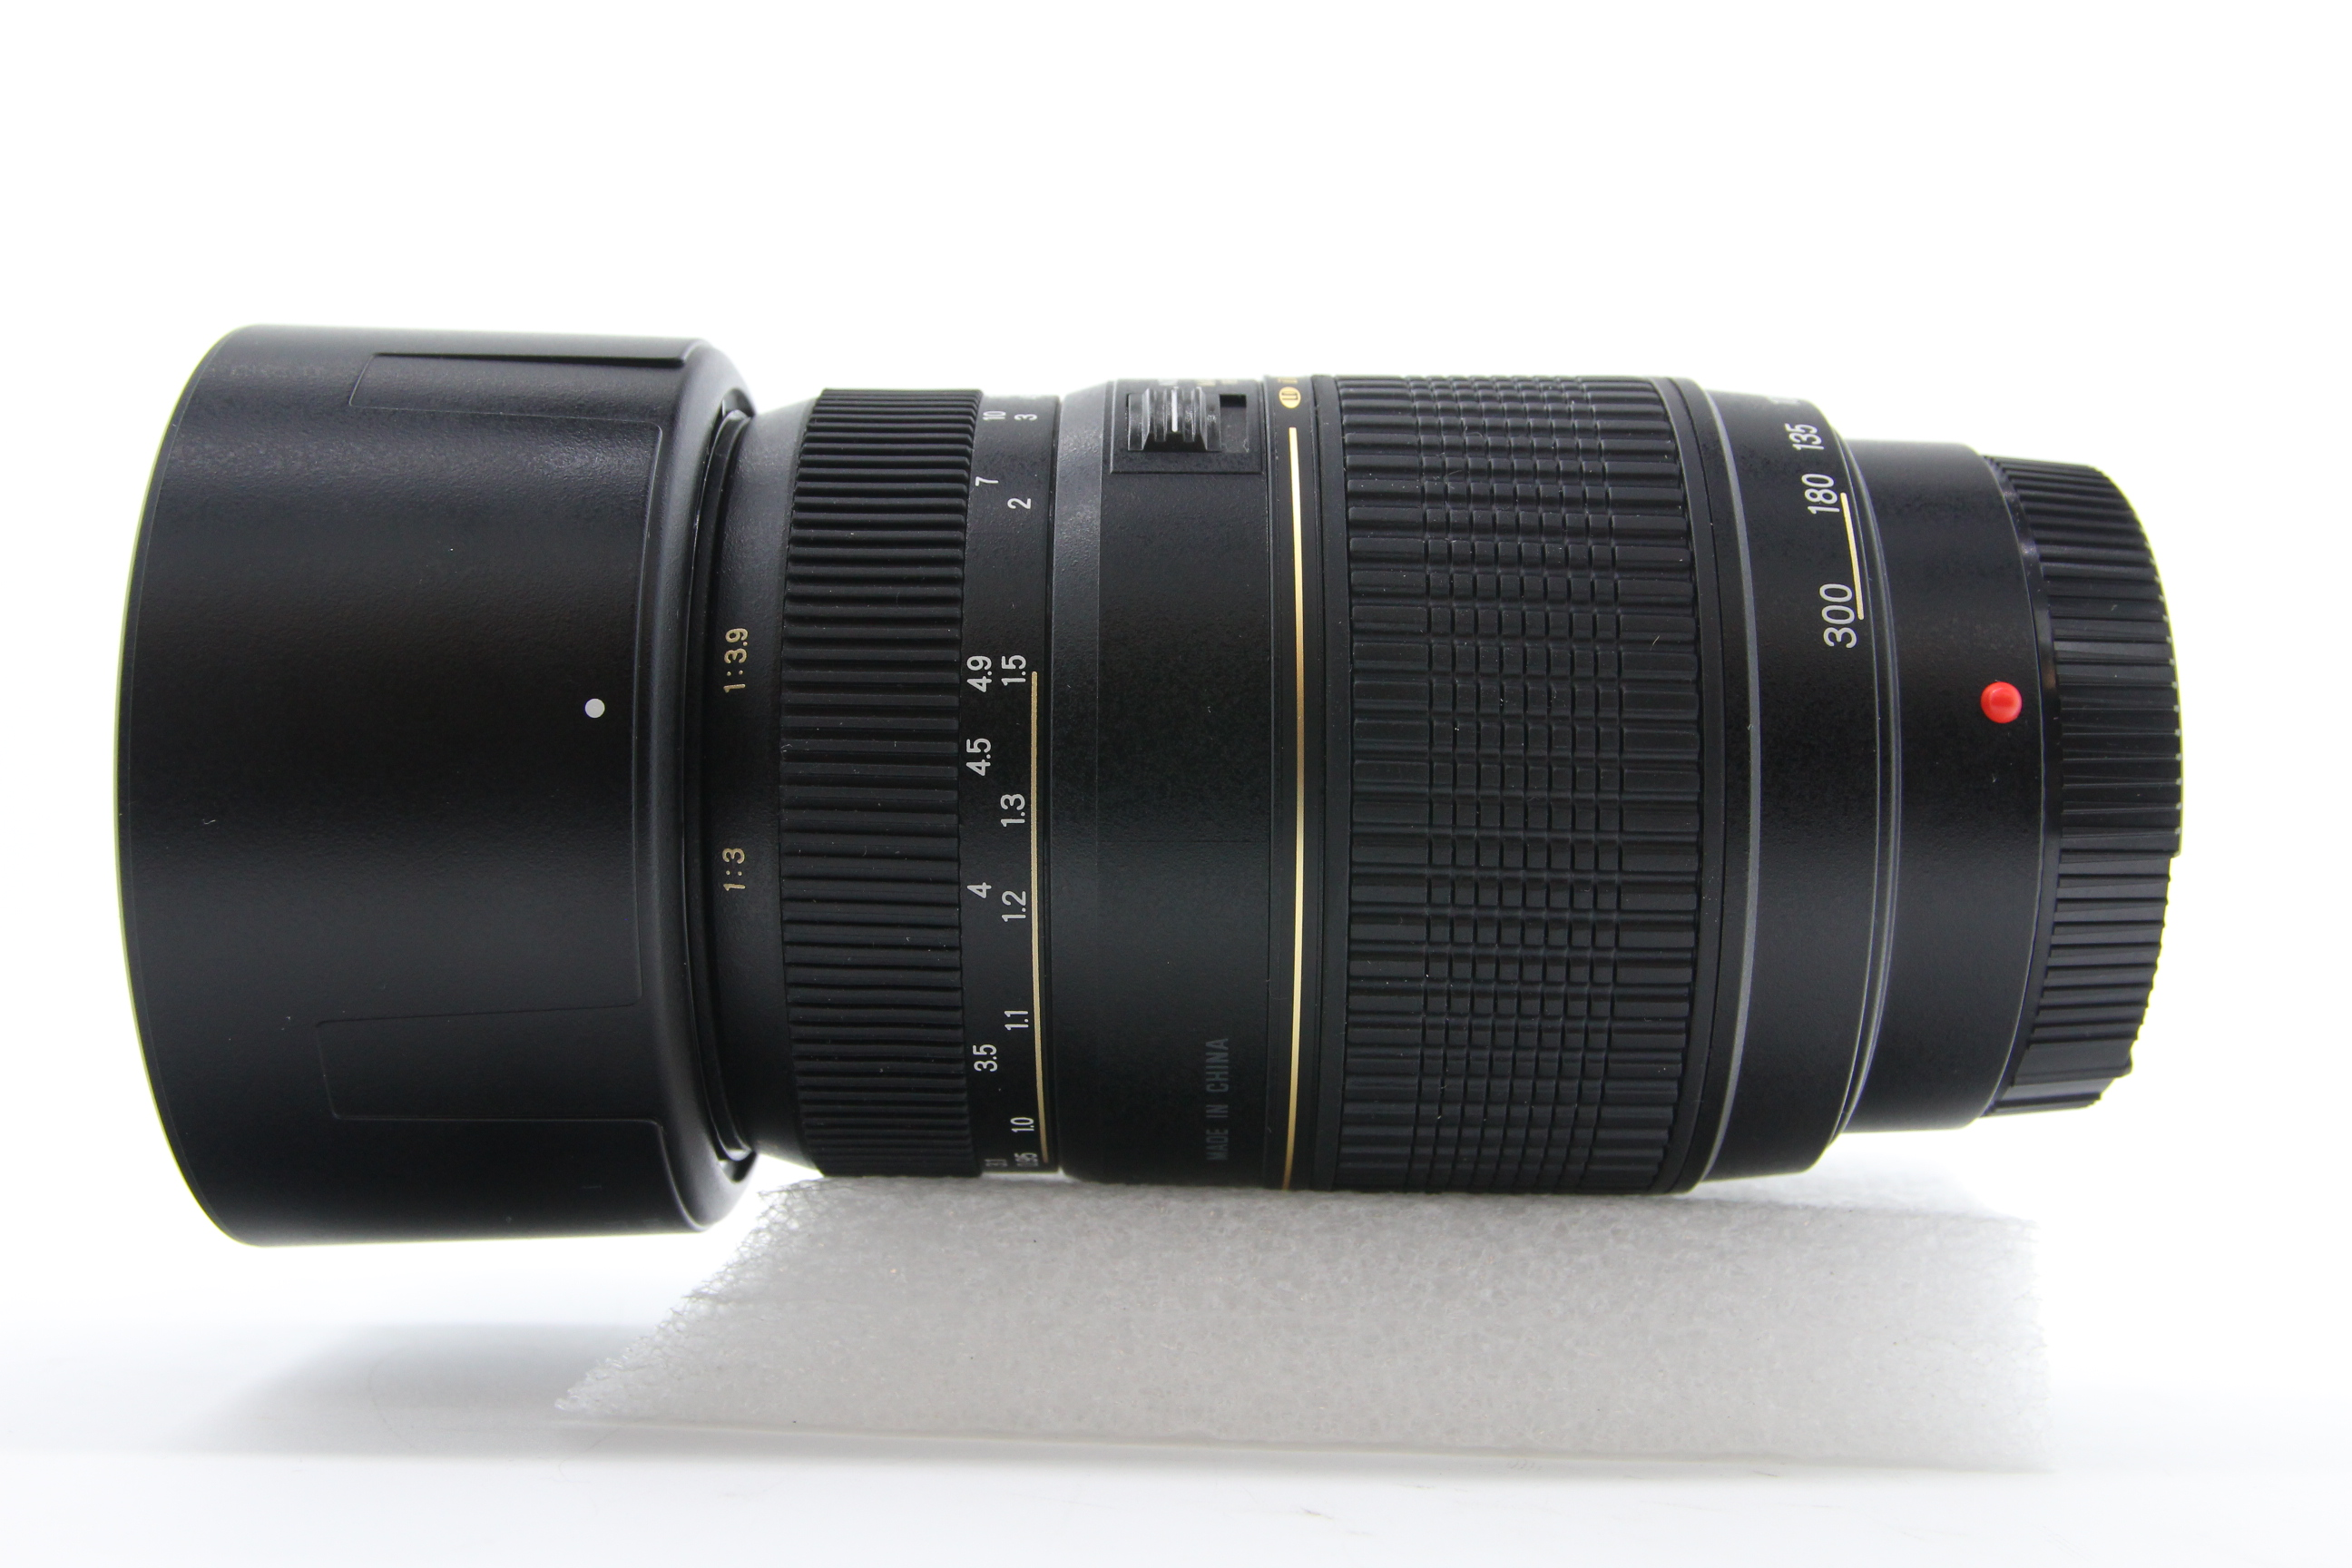 Pre Loved Tamron Under 27 Rental From 4 Month Cameracorp Australia For Nikon Sp 70 300mm F4 56 Di Vc Usd Lens